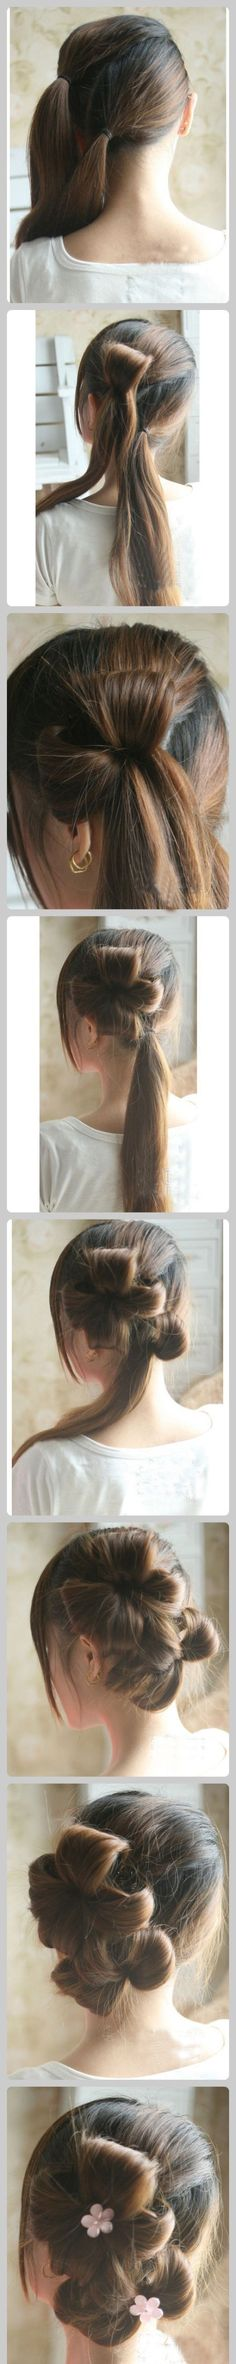 floral bun how to.  My super long hair is DYING to try this